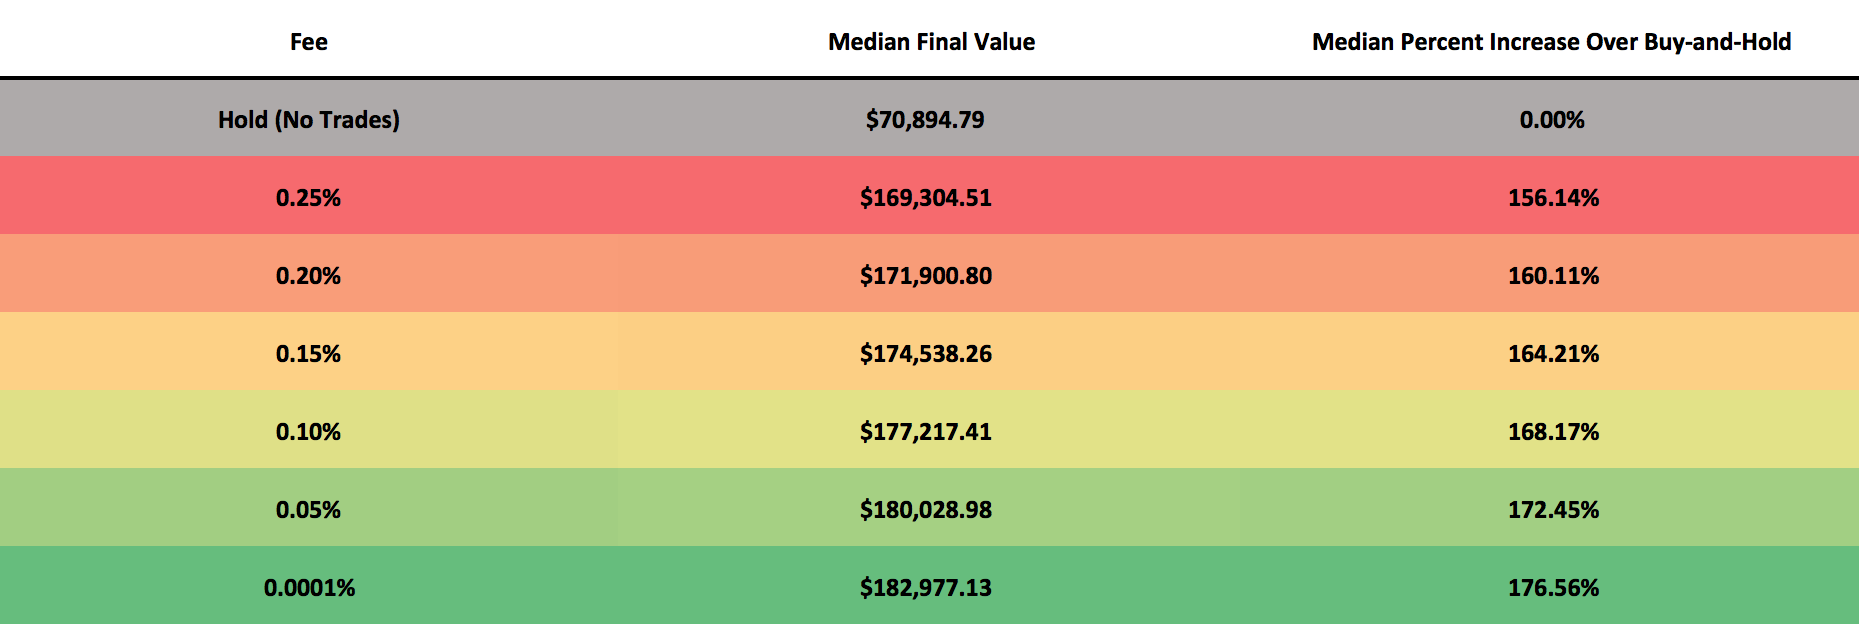 This table illustrates the median performance of 1,000 backtests which were run with each of the trading fees depicted above. The median final value is the value of the median portfolio after the backtest is complete. Each backtest is allocated $5,000 at the start, so a final value of $70,894.79 which was achieved for buy-and-hold suggests a median performance increase of 1,318%. The median percent increase over buy-and-hold is how much better the median final value performed than the median buy-and-hold value.